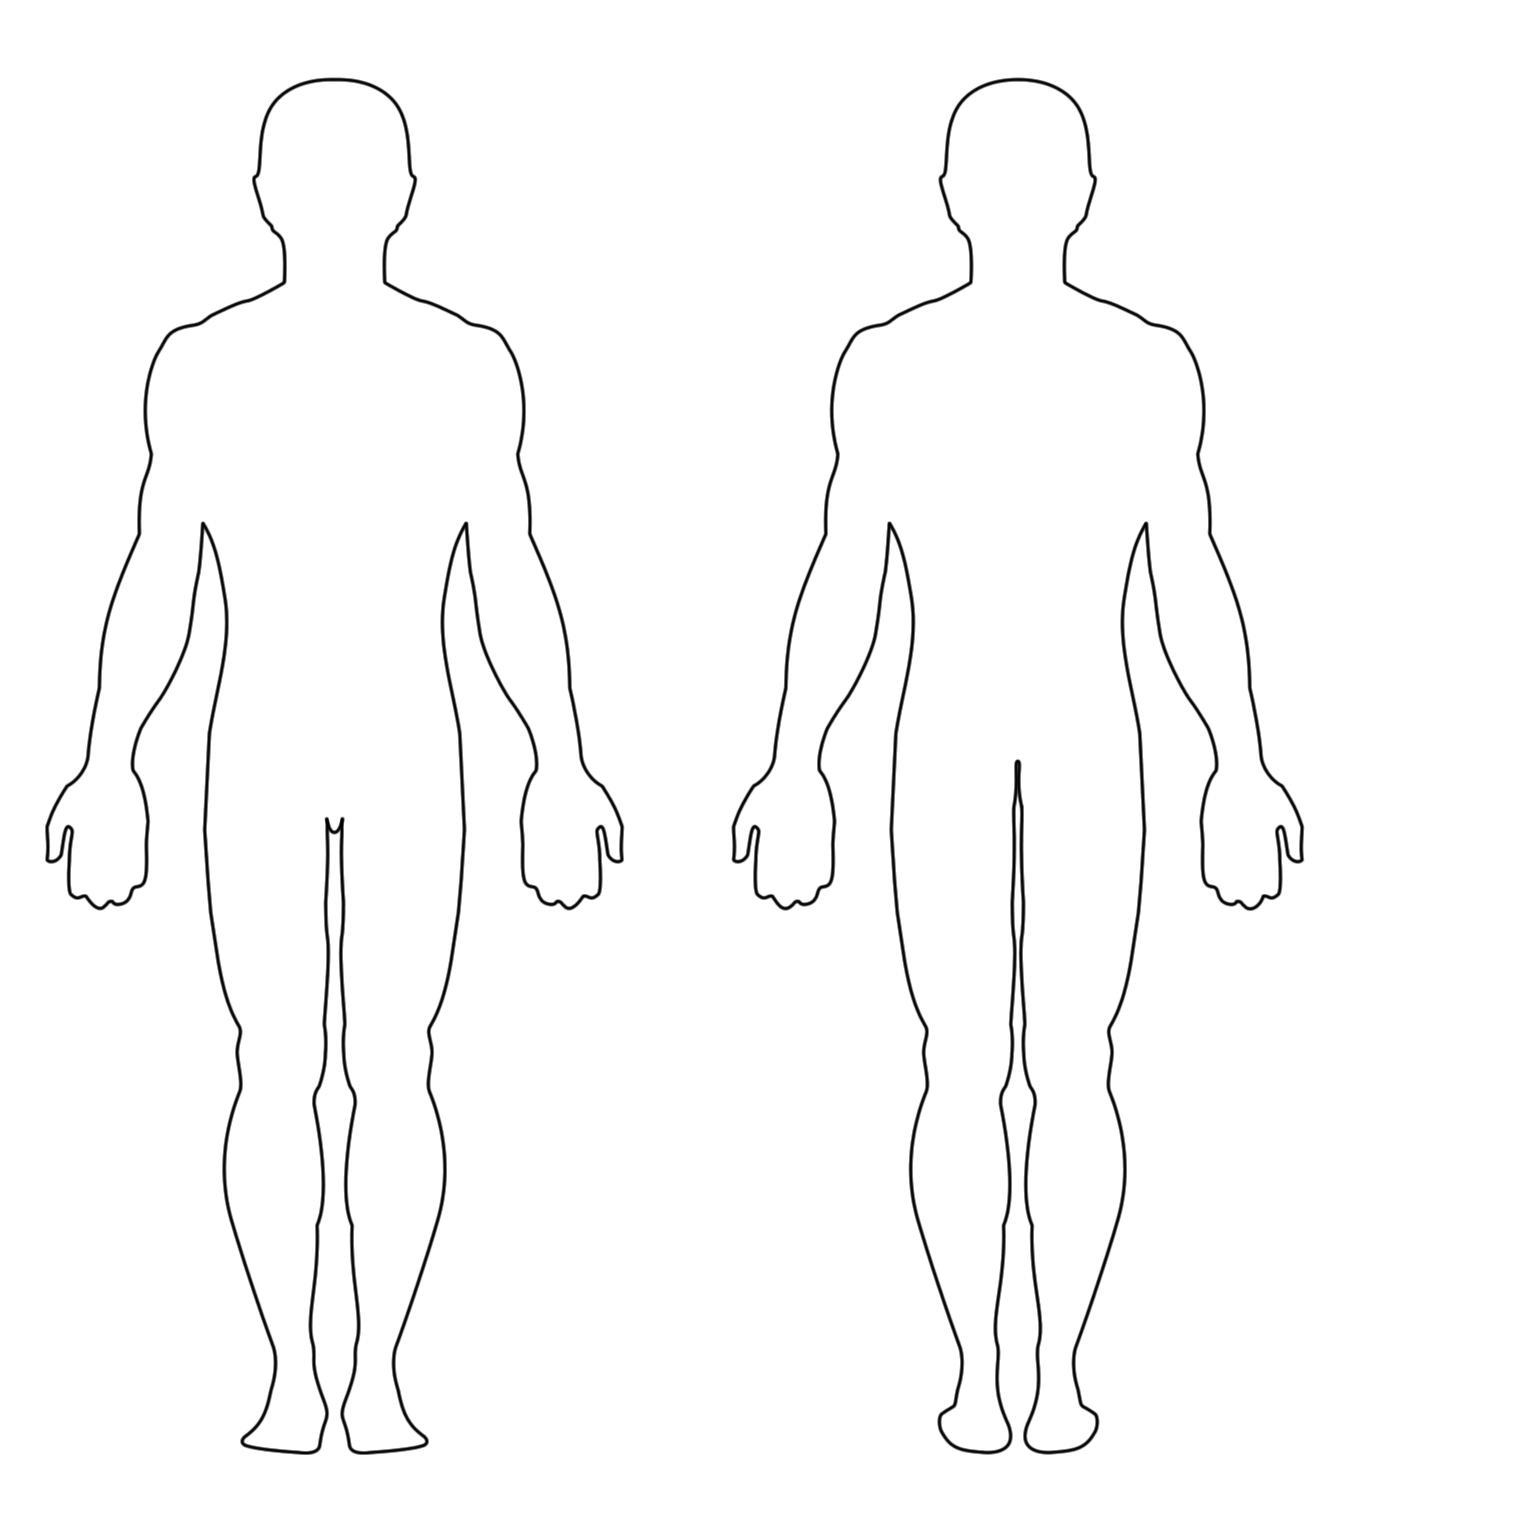 Drawing Outline Of Human Body